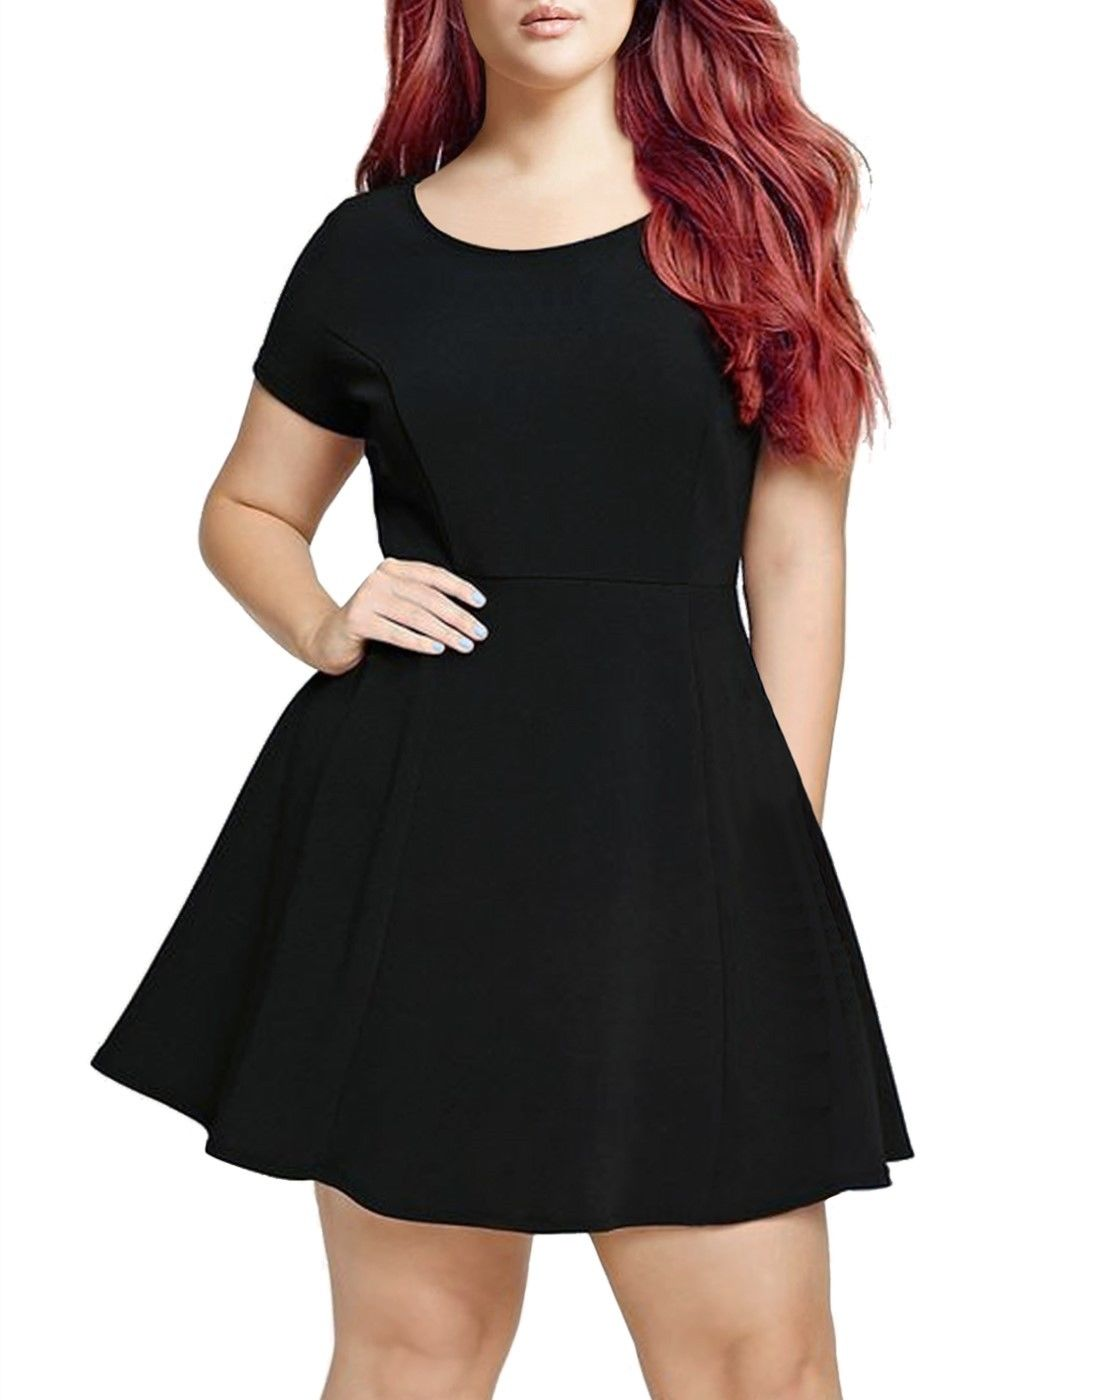 PLUS SIZE FIT AND FLARE SKATER DRESS